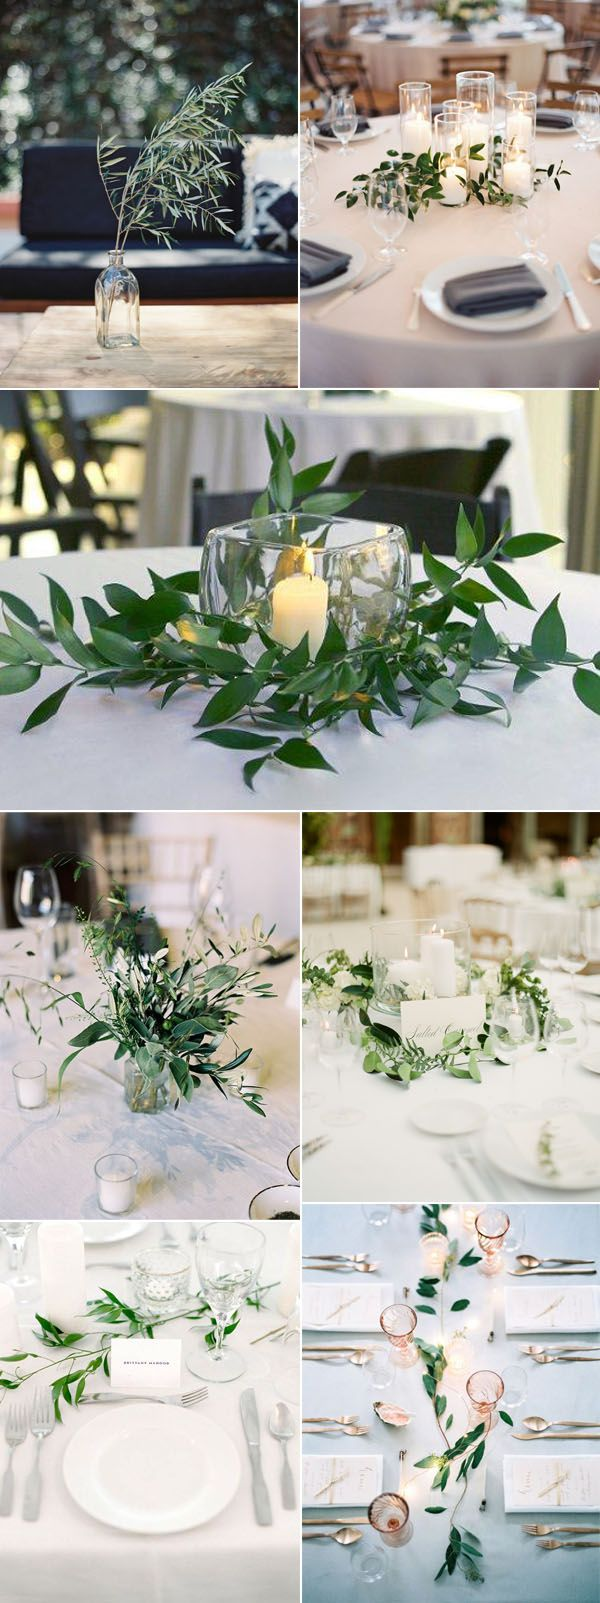 2017 trends easy diy organic minimalist wedding ideas for Selbstgemachte hochzeitsdeko